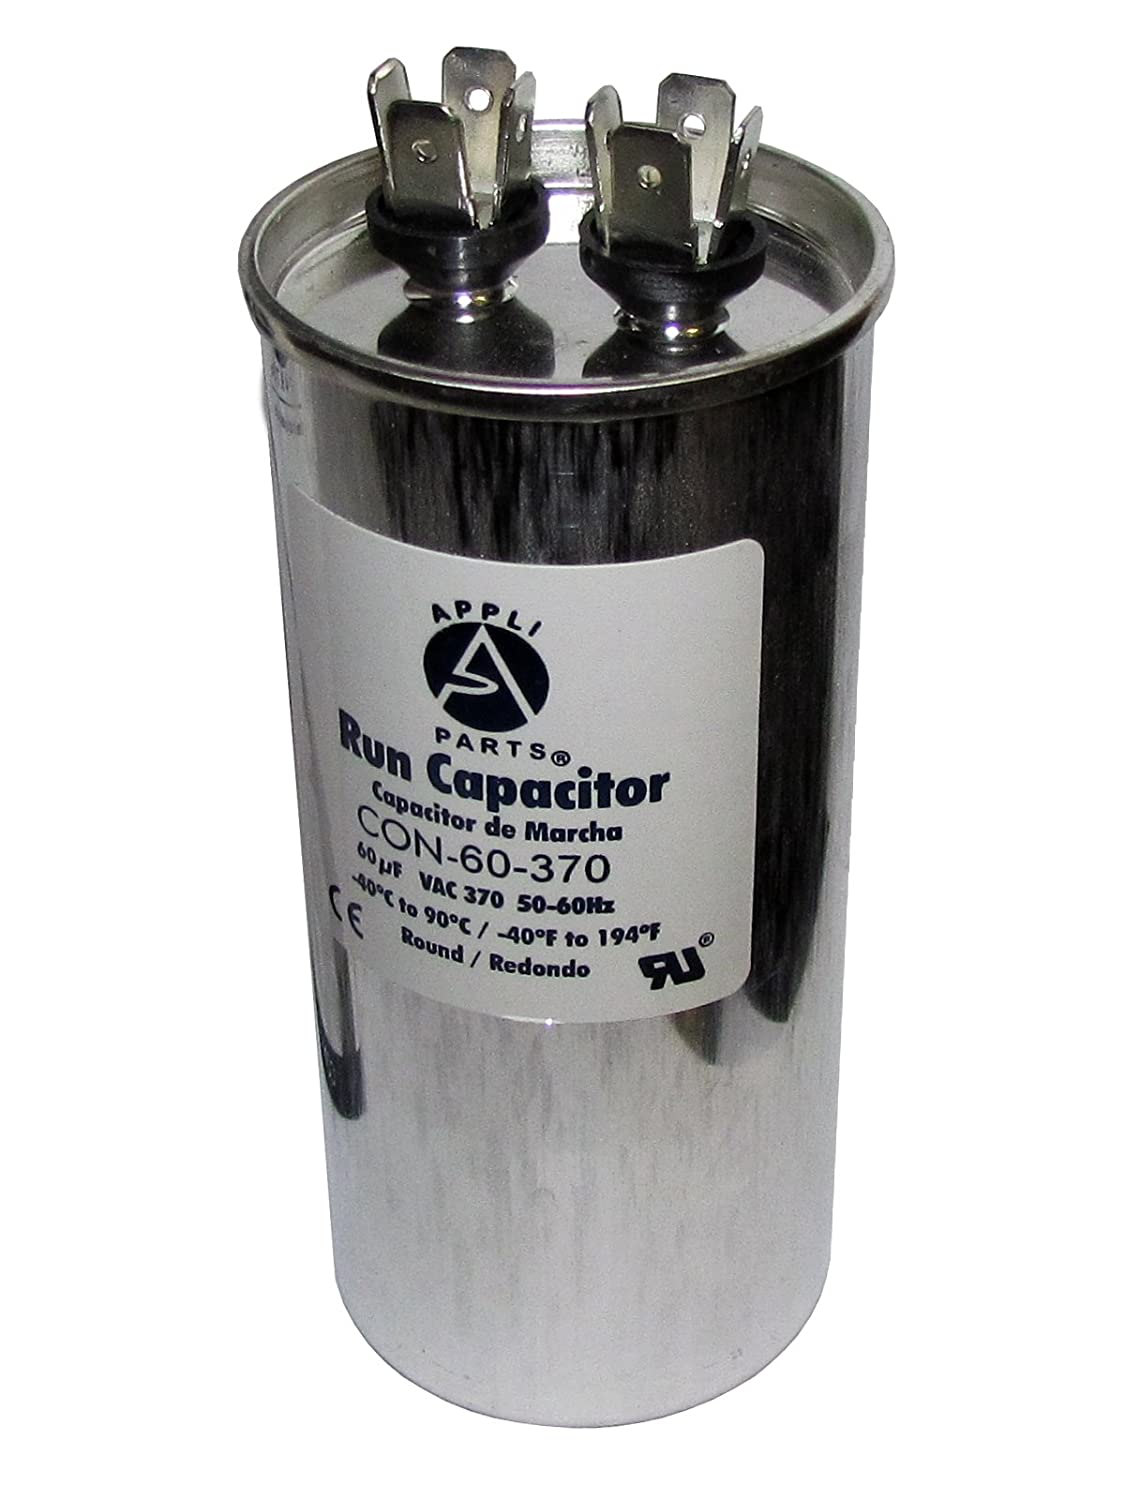 UL Certified RC-50F RUN CAPACITOR 50 MFD 370 VAC ROUND CAN